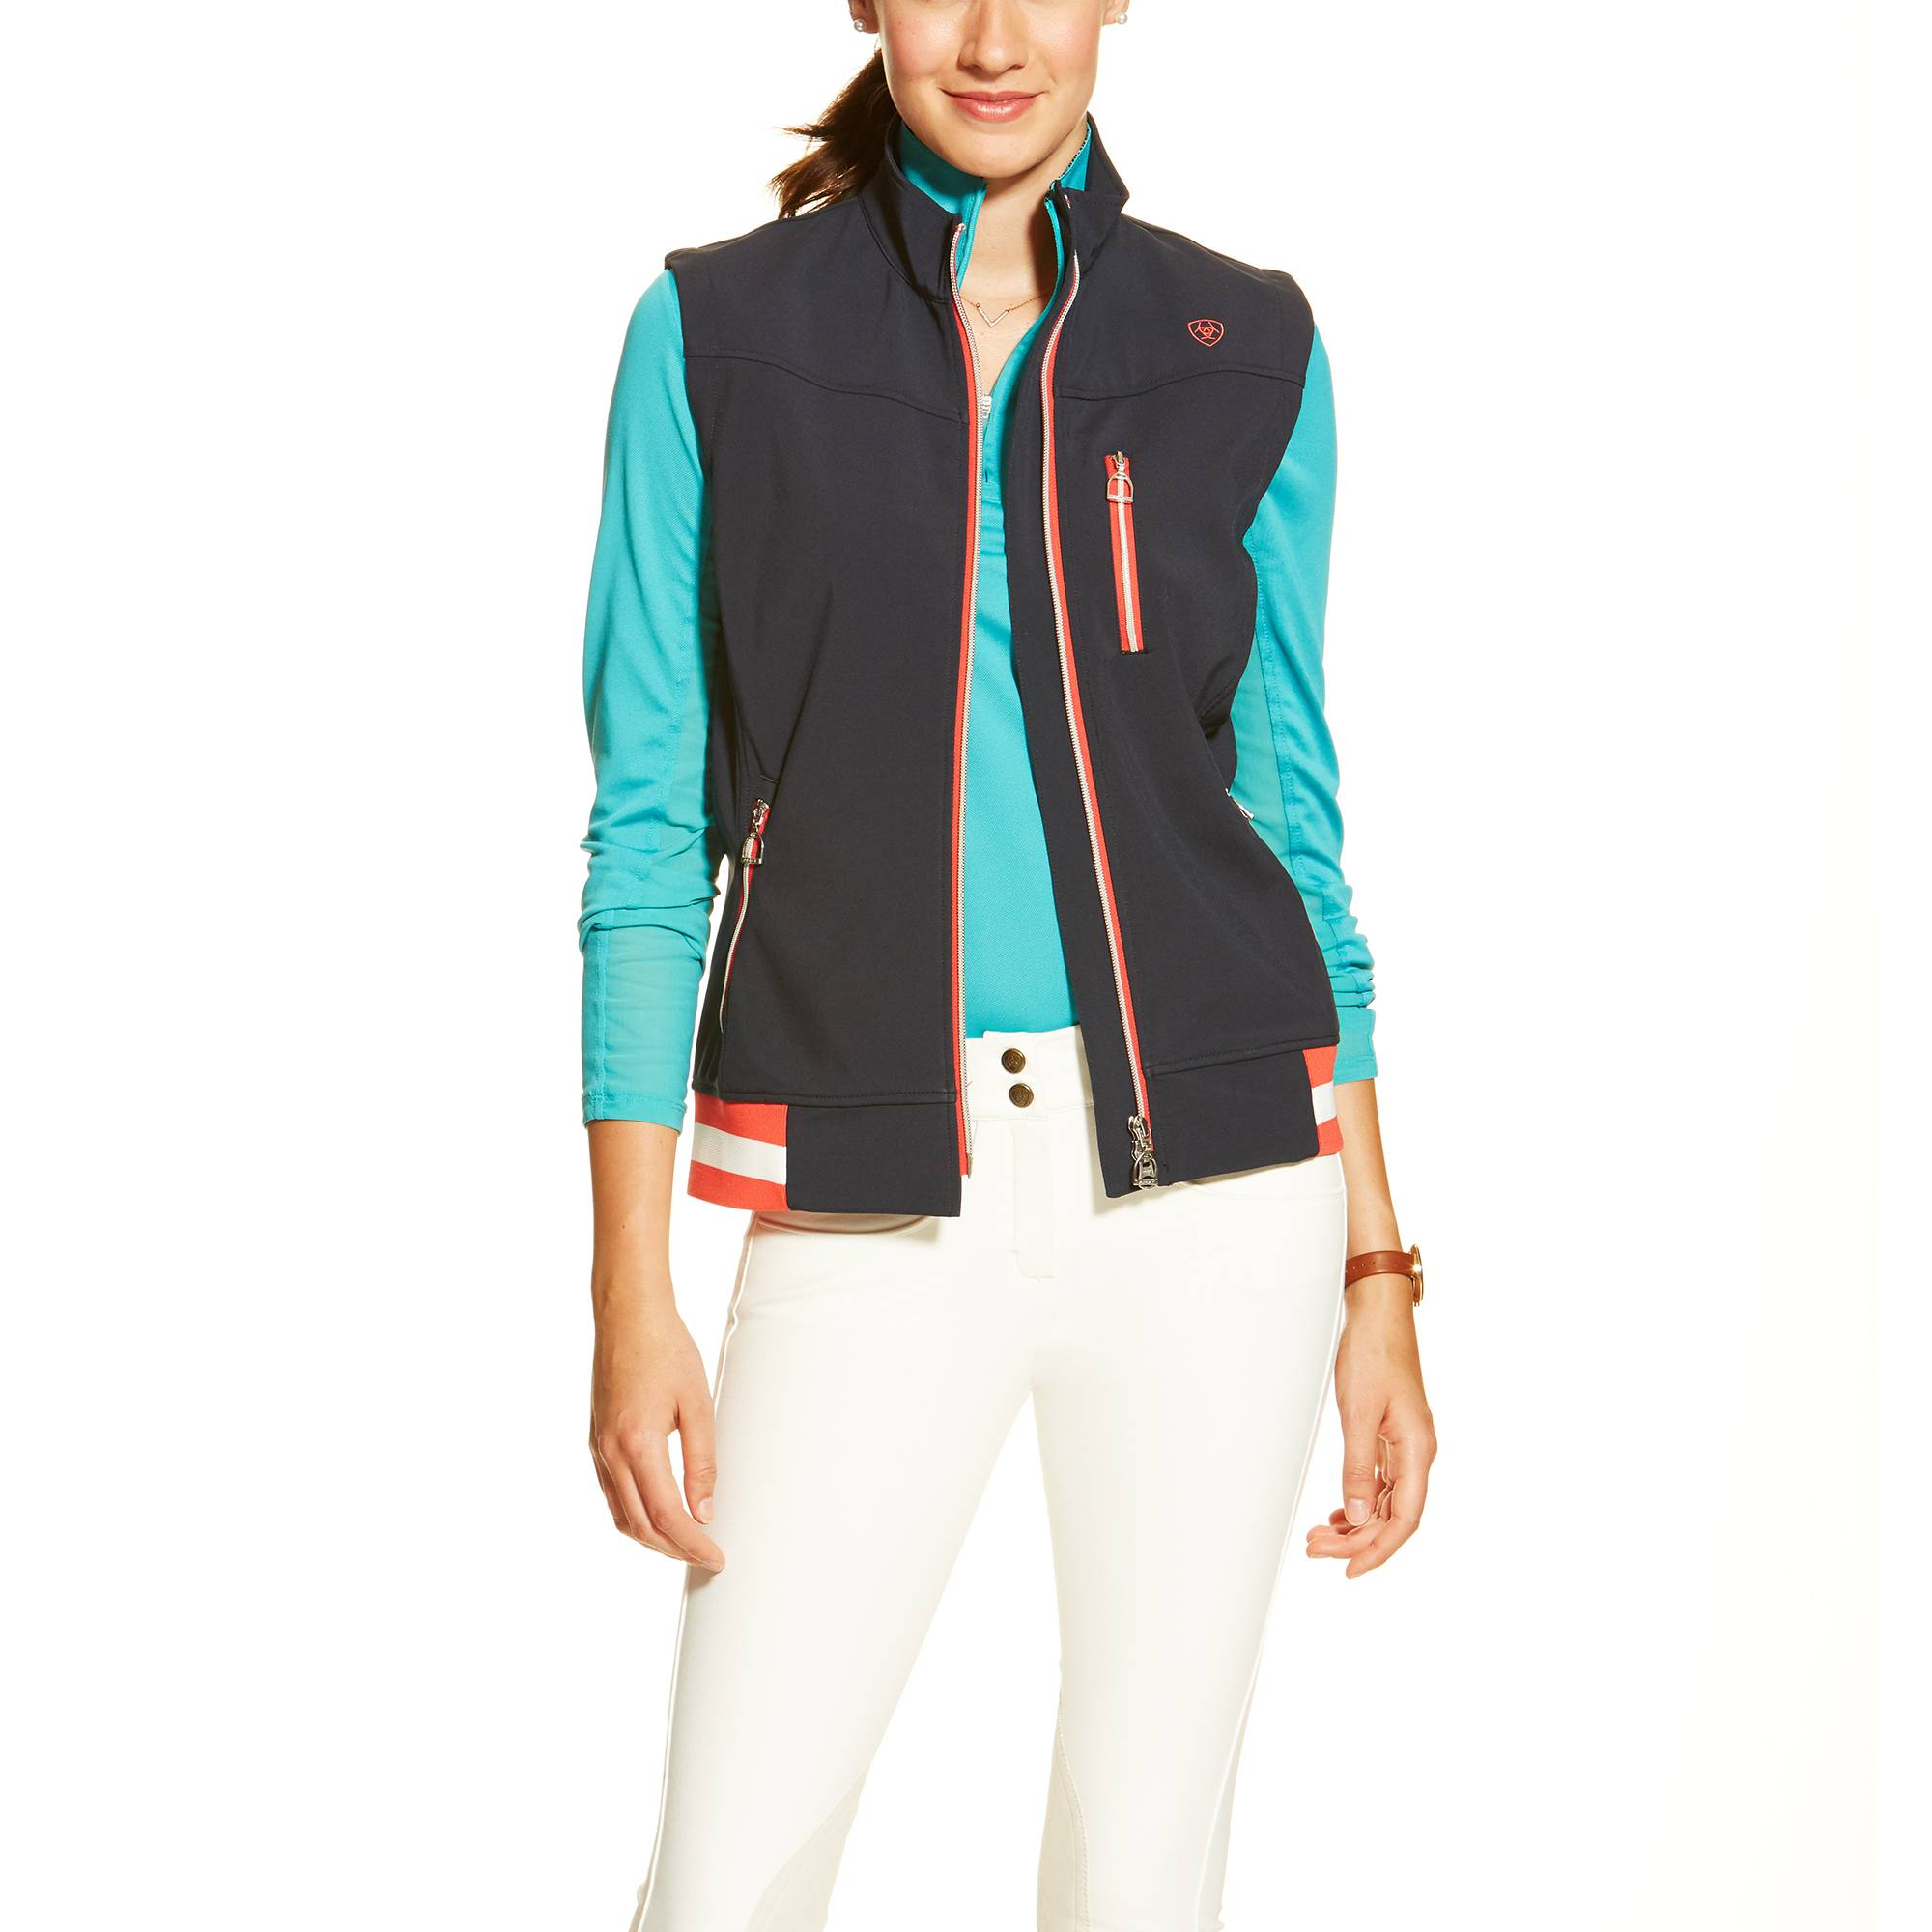 Ariat Egan Vest - Ladies - Navy